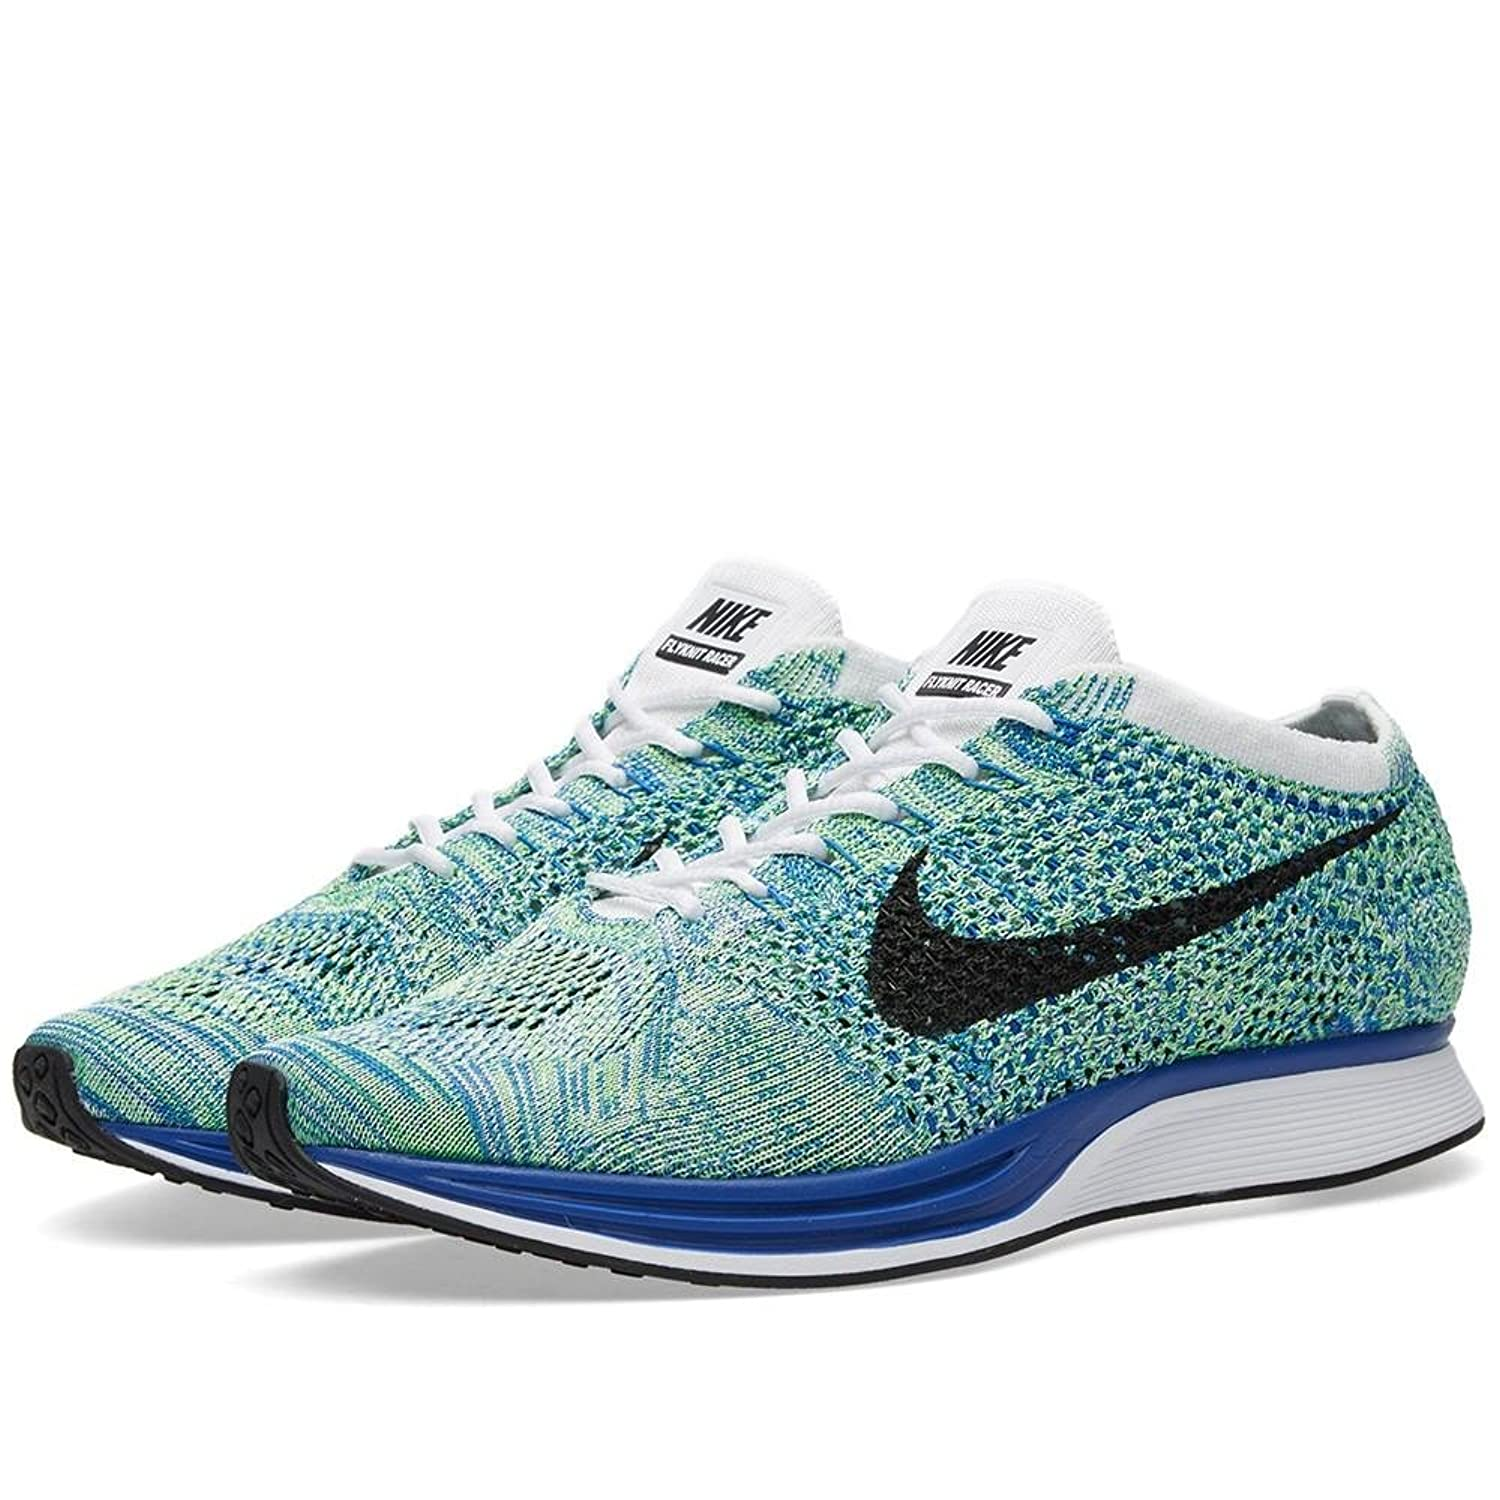 Nike Nike Nike Flyknit Racer Pearl rosa Musée des impressionnismes Giverny 3d7e47